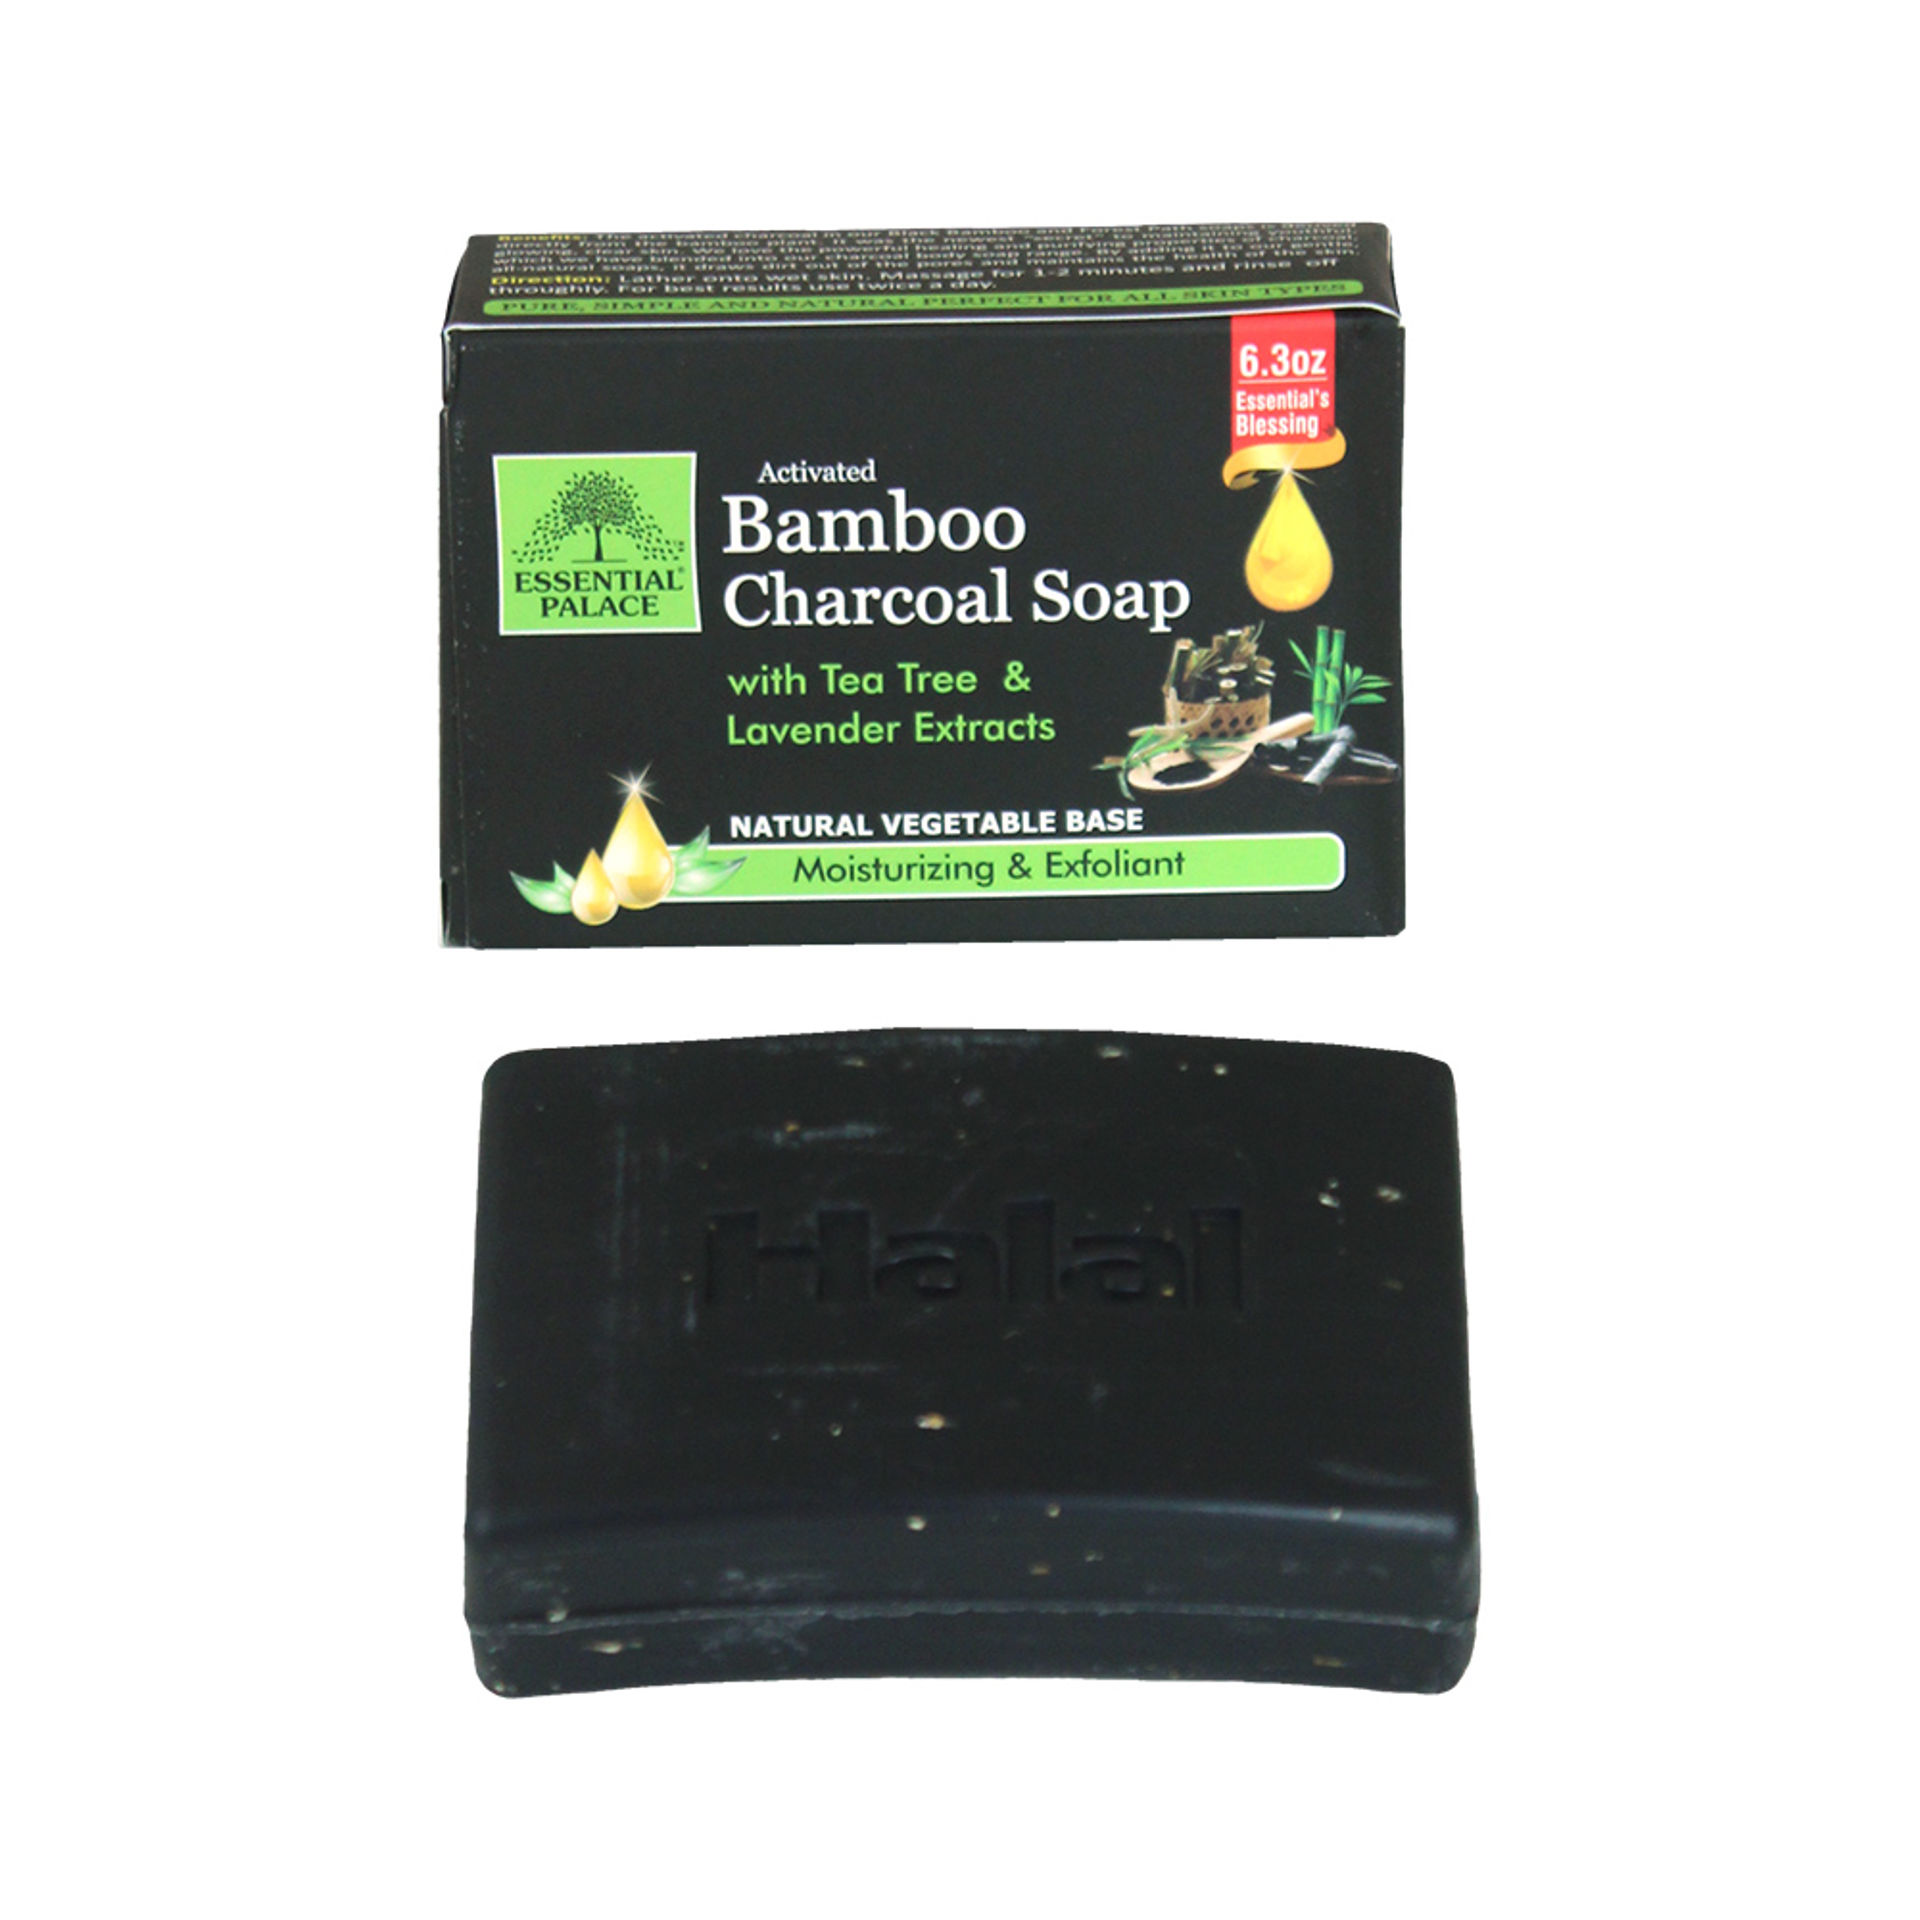 Picture of Bamboo Charcoal Soap - 6.3 oz.